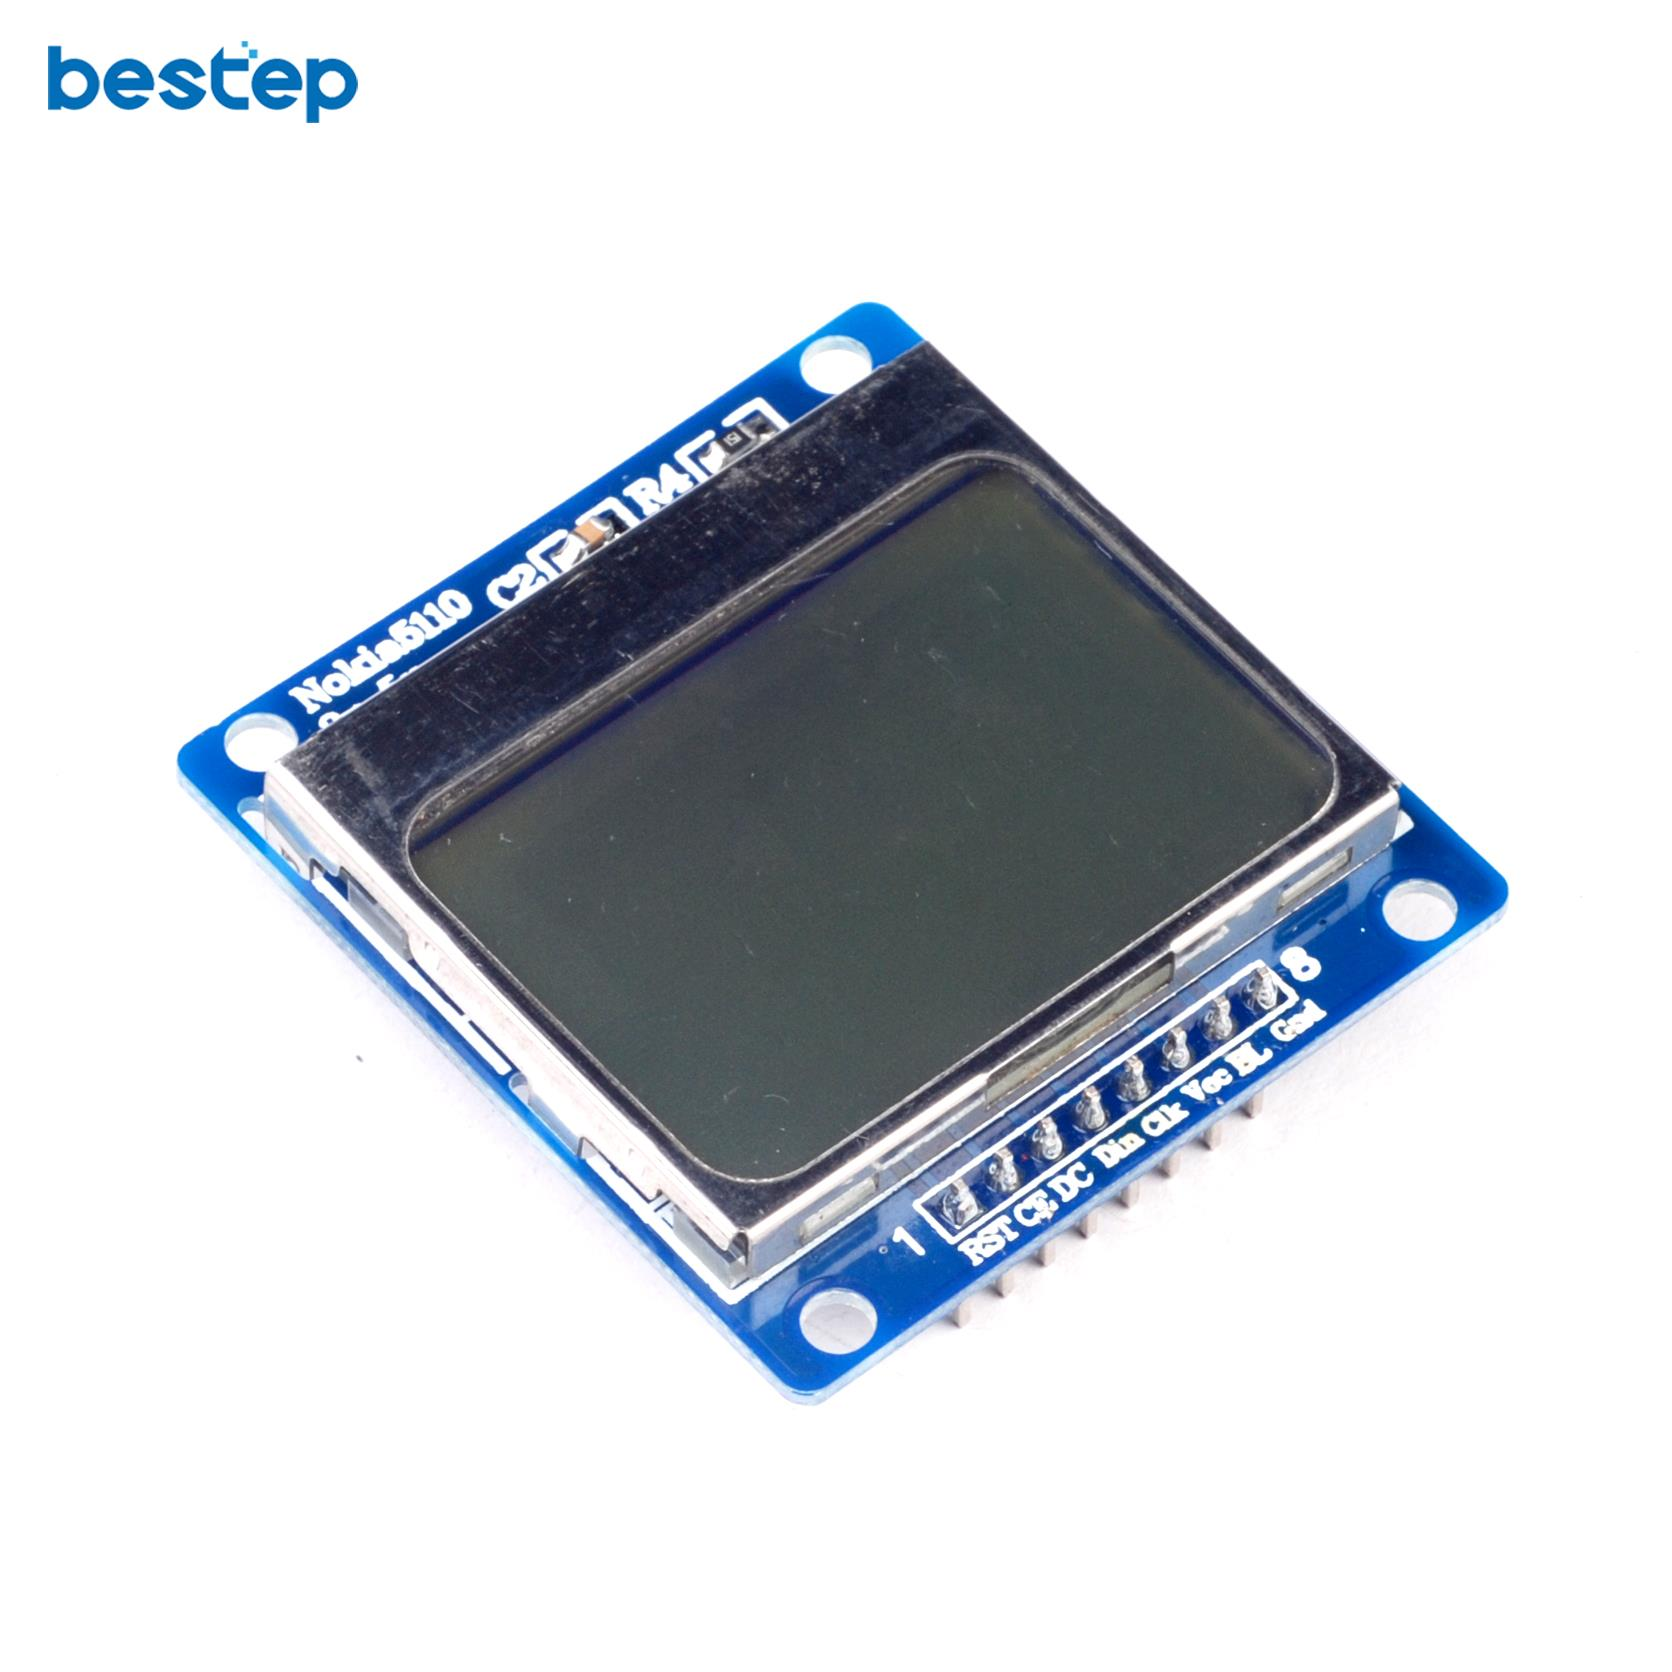 Nokia 5110 lcd module monochrome display screen 84 x 48 for arduino - 1pcs Blue 84x48 For Nokia 5110 Lcd Module With Blue Backlight With Adapter Pcb For Arduino